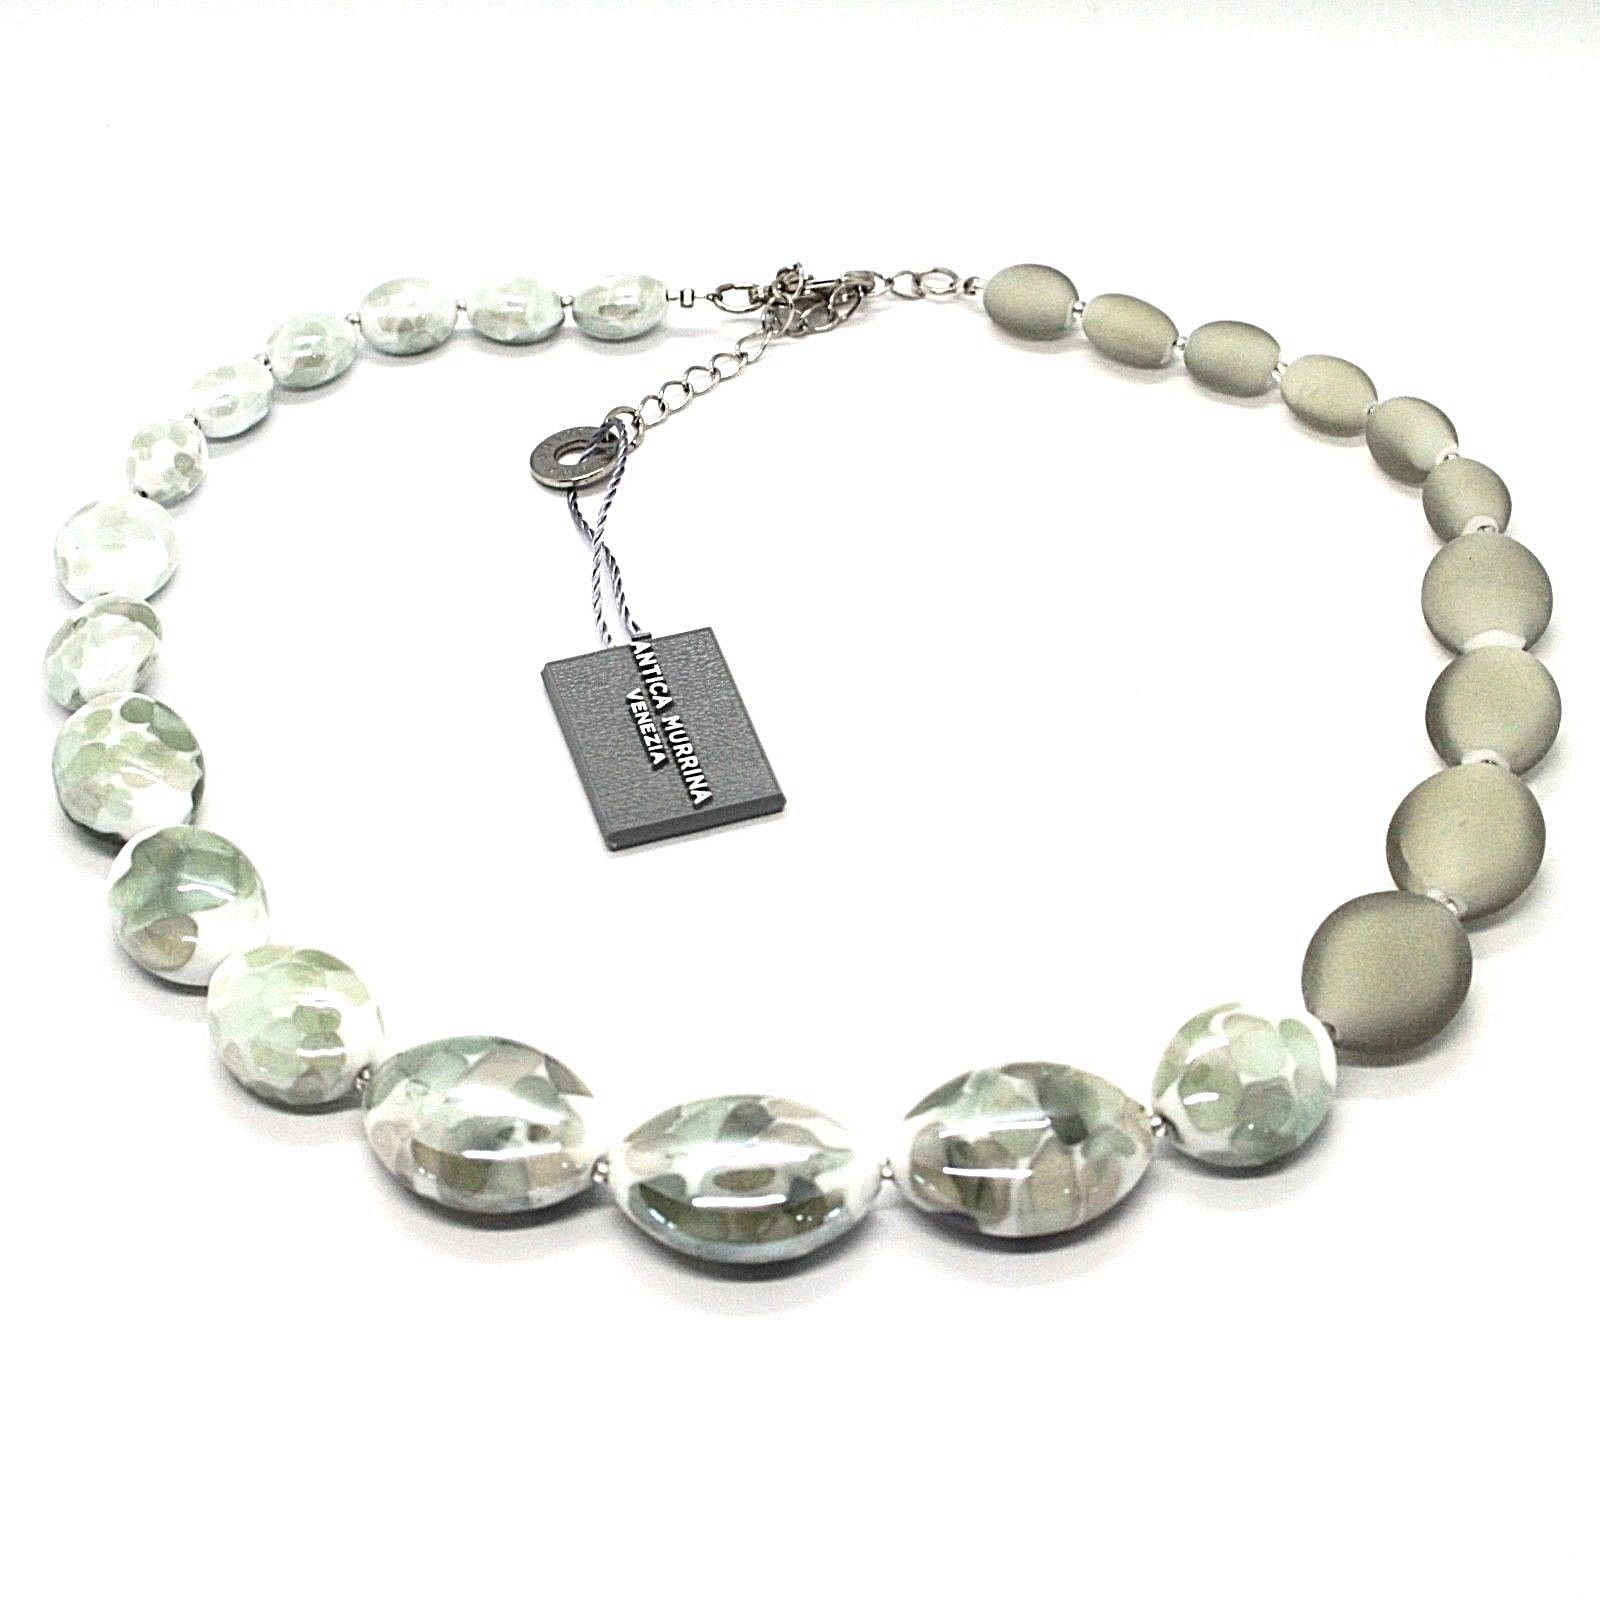 NECKLACE ANTICA MURRINA VENEZIA WITH MURANO GLASS GREY WHITE SILVER CO924A12